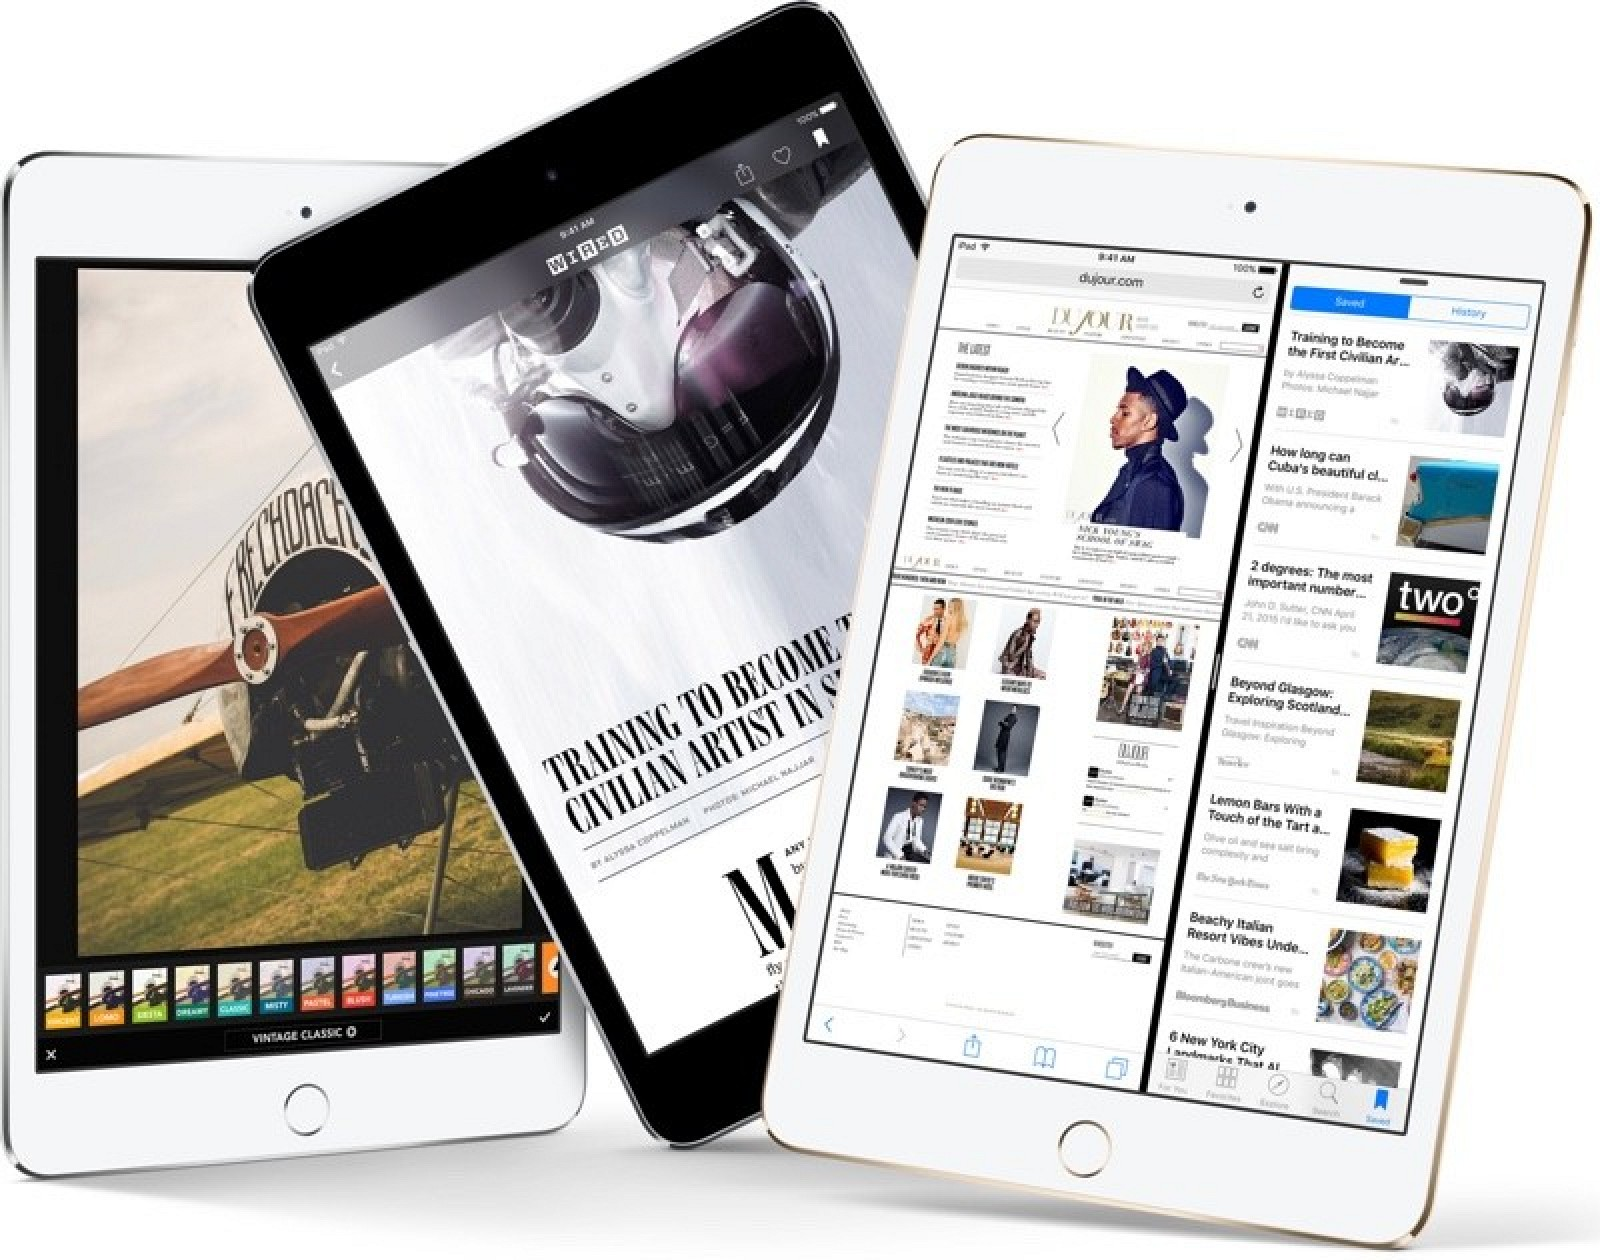 Apple Rumored to Discontinue iPad Mini